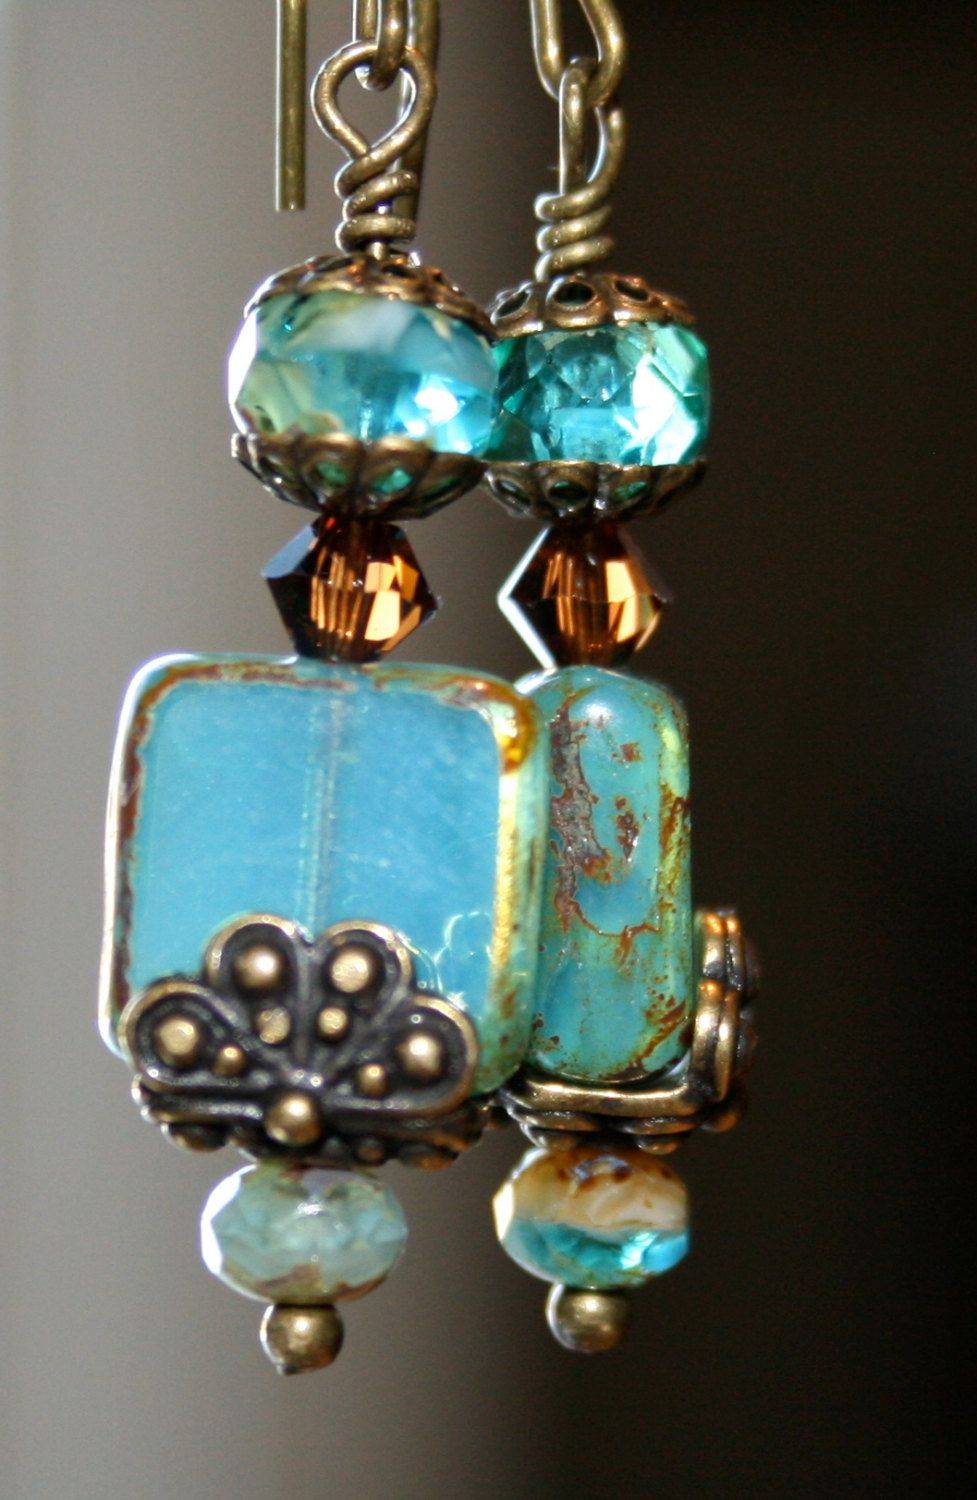 Aqua Picasso earrings Picasso bead earrings by CharmingLifeJewelry